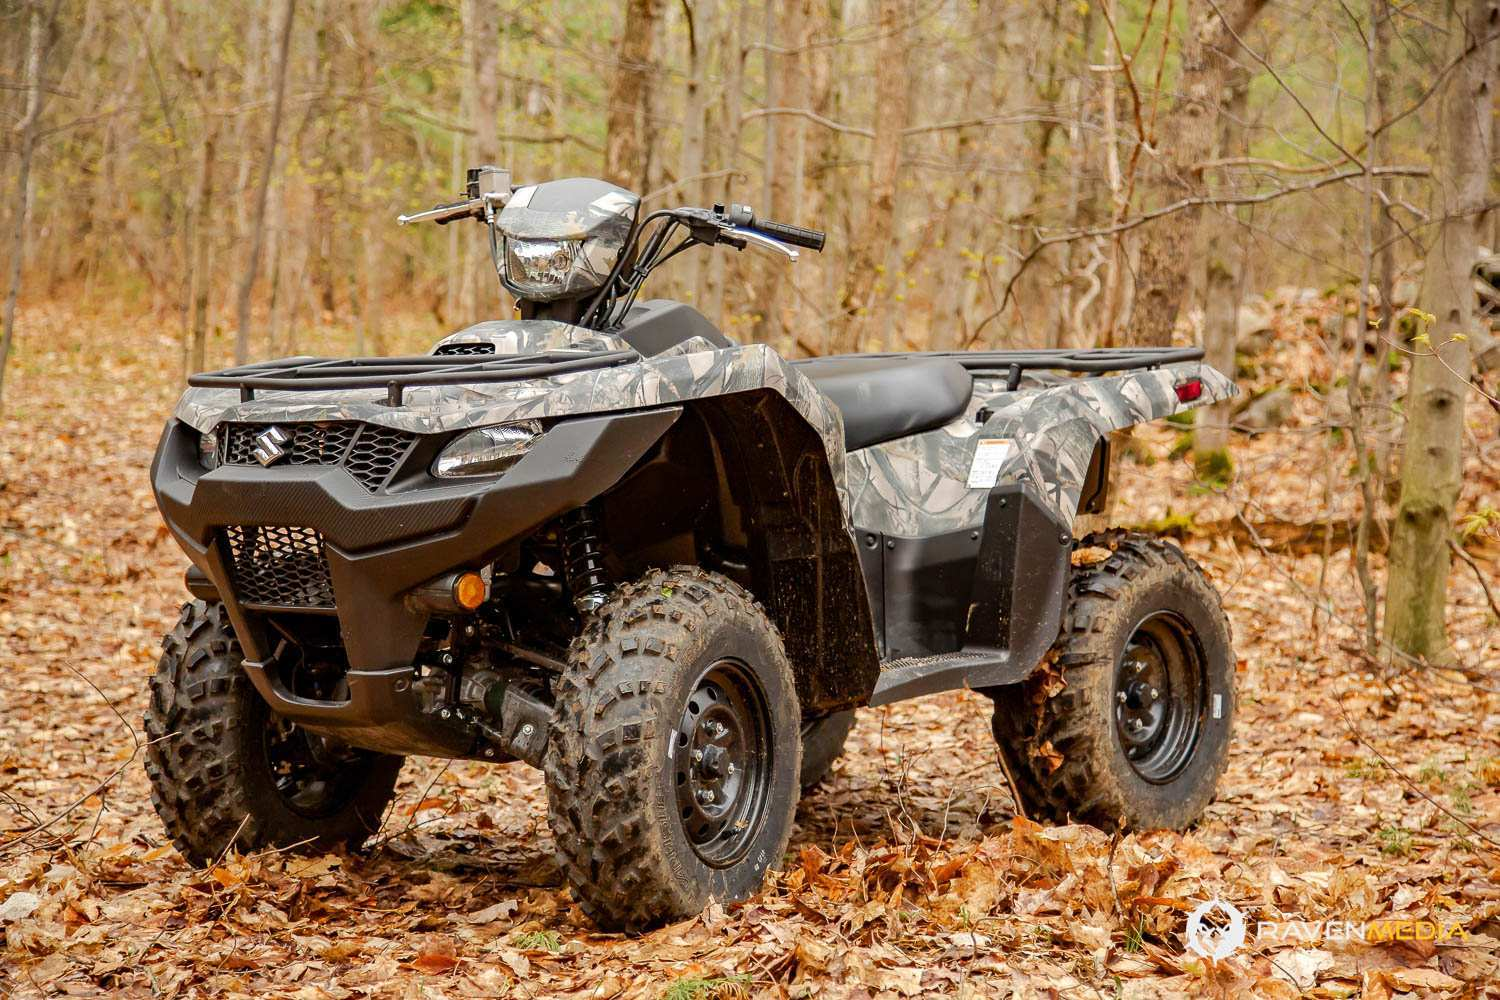 13 All New 2019 Suzuki King Quad Release